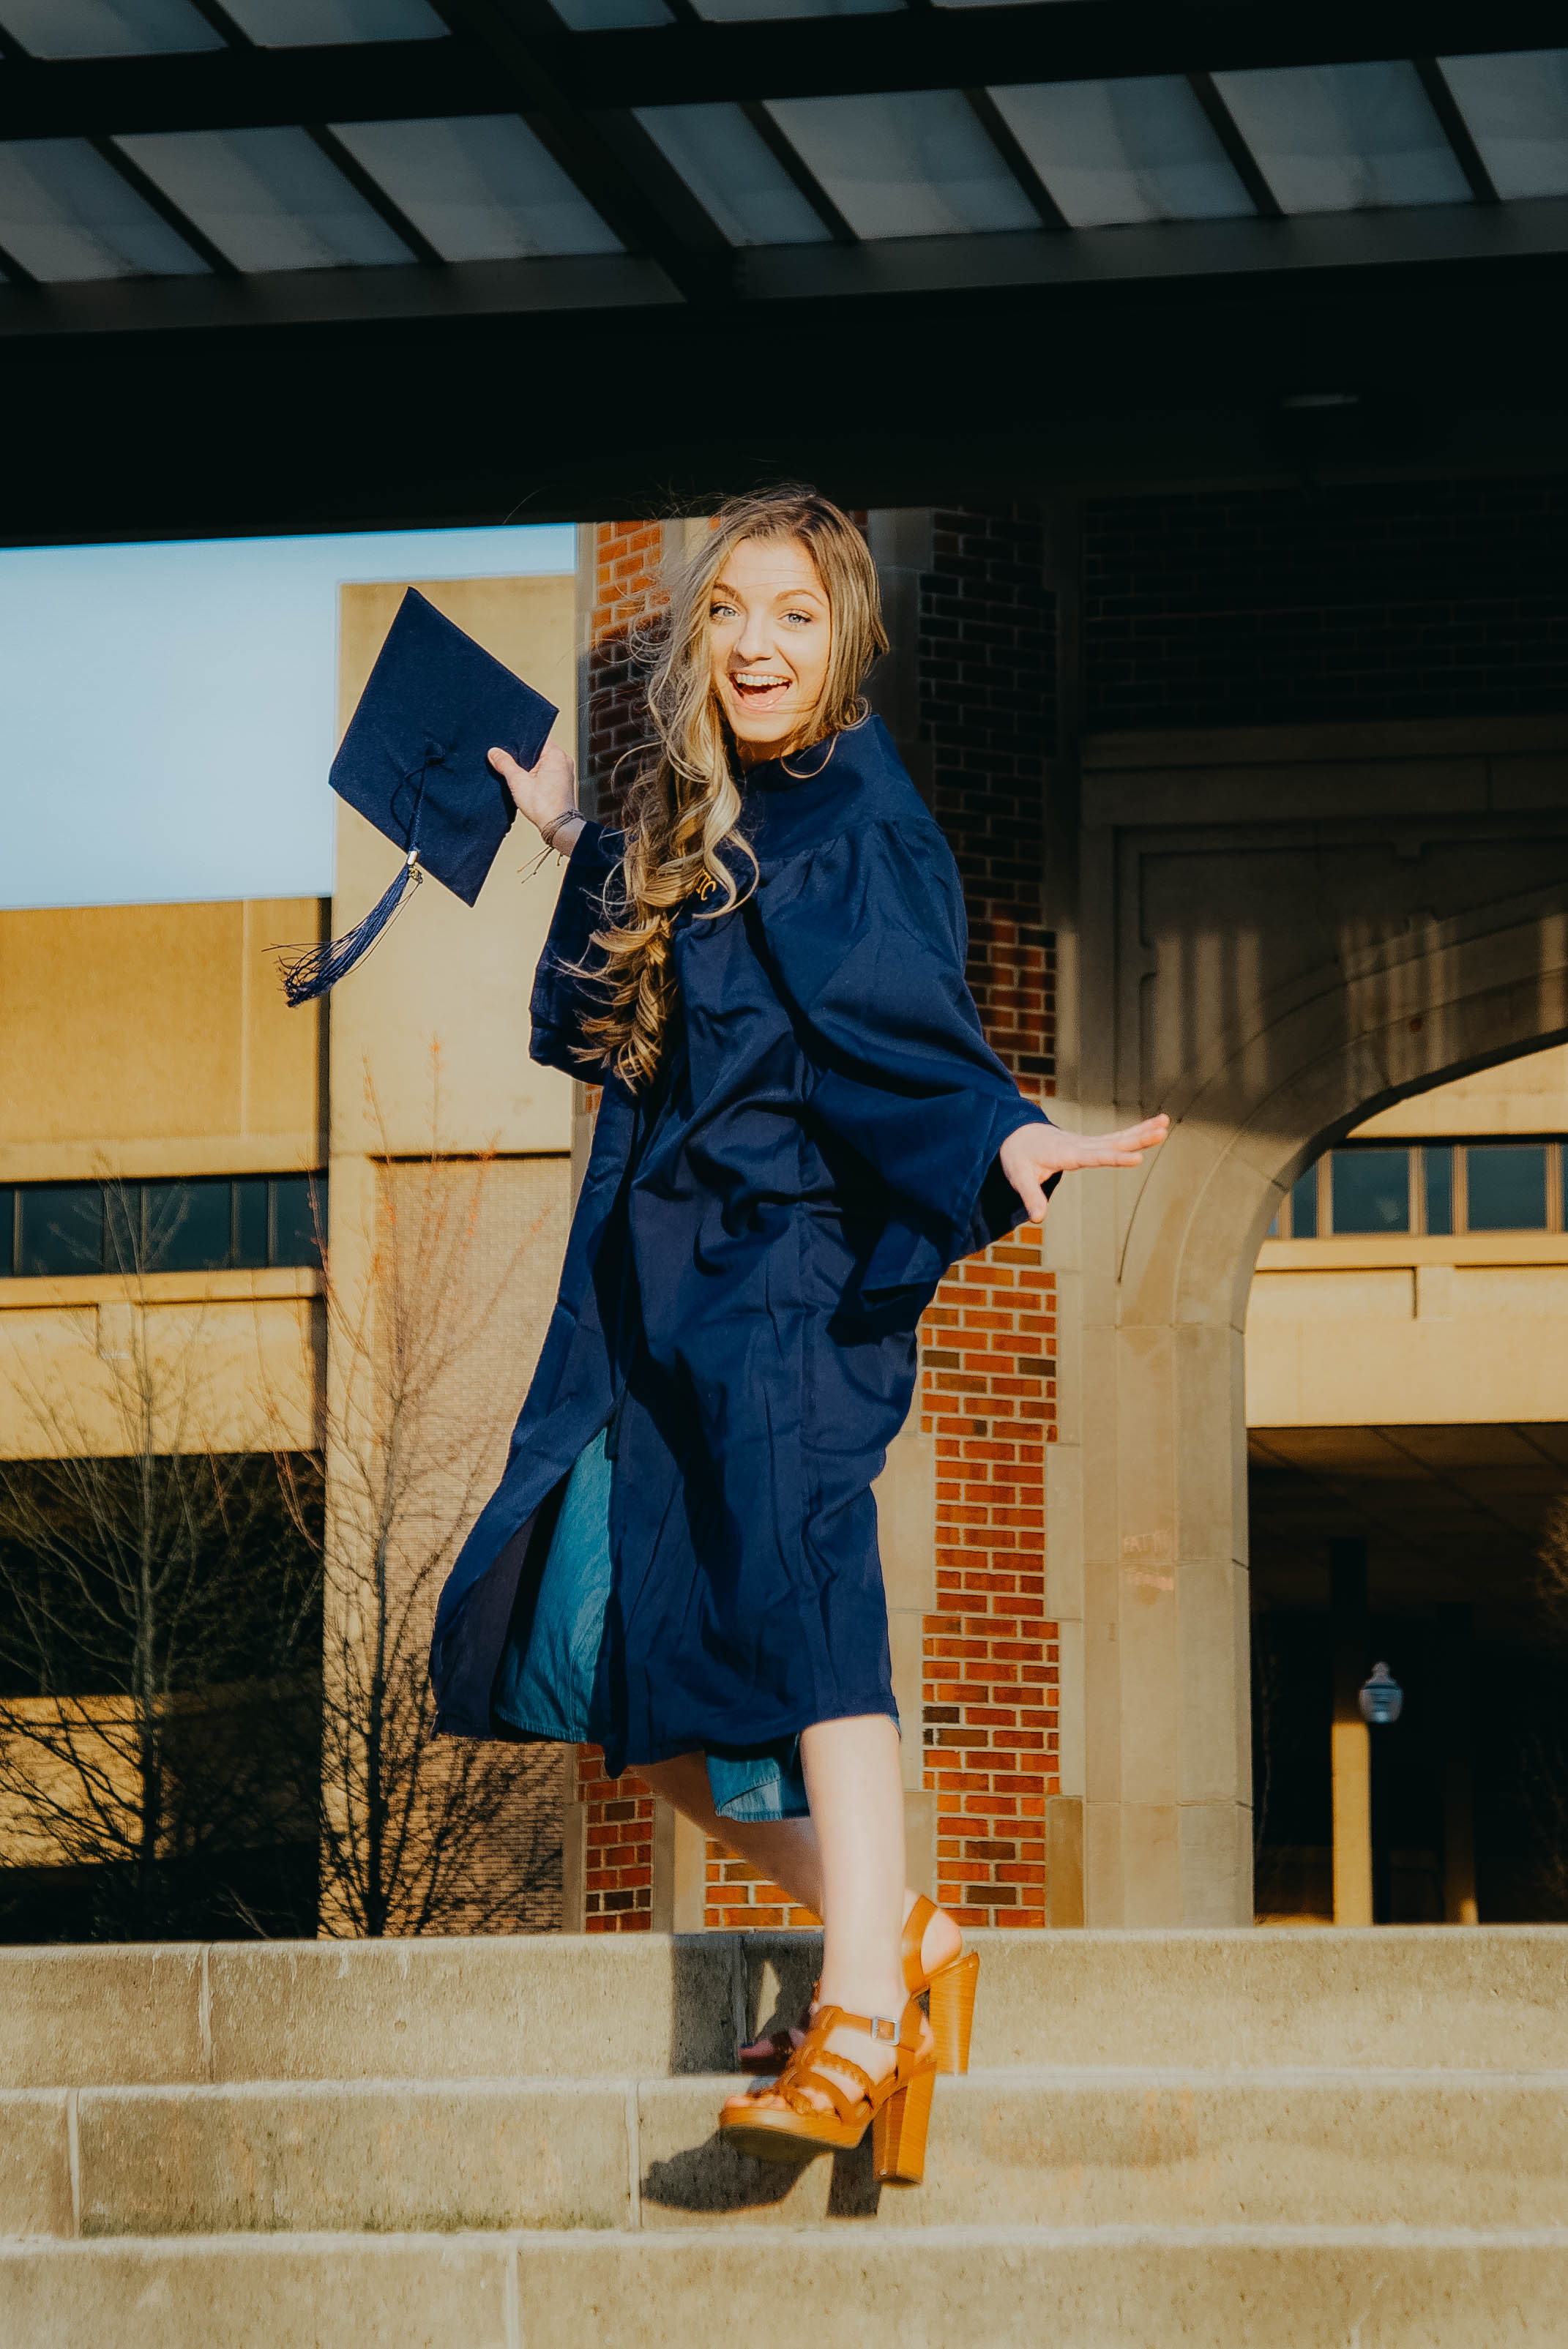 Once we got her loosened up she started dancing on the steps, typical Maddie.